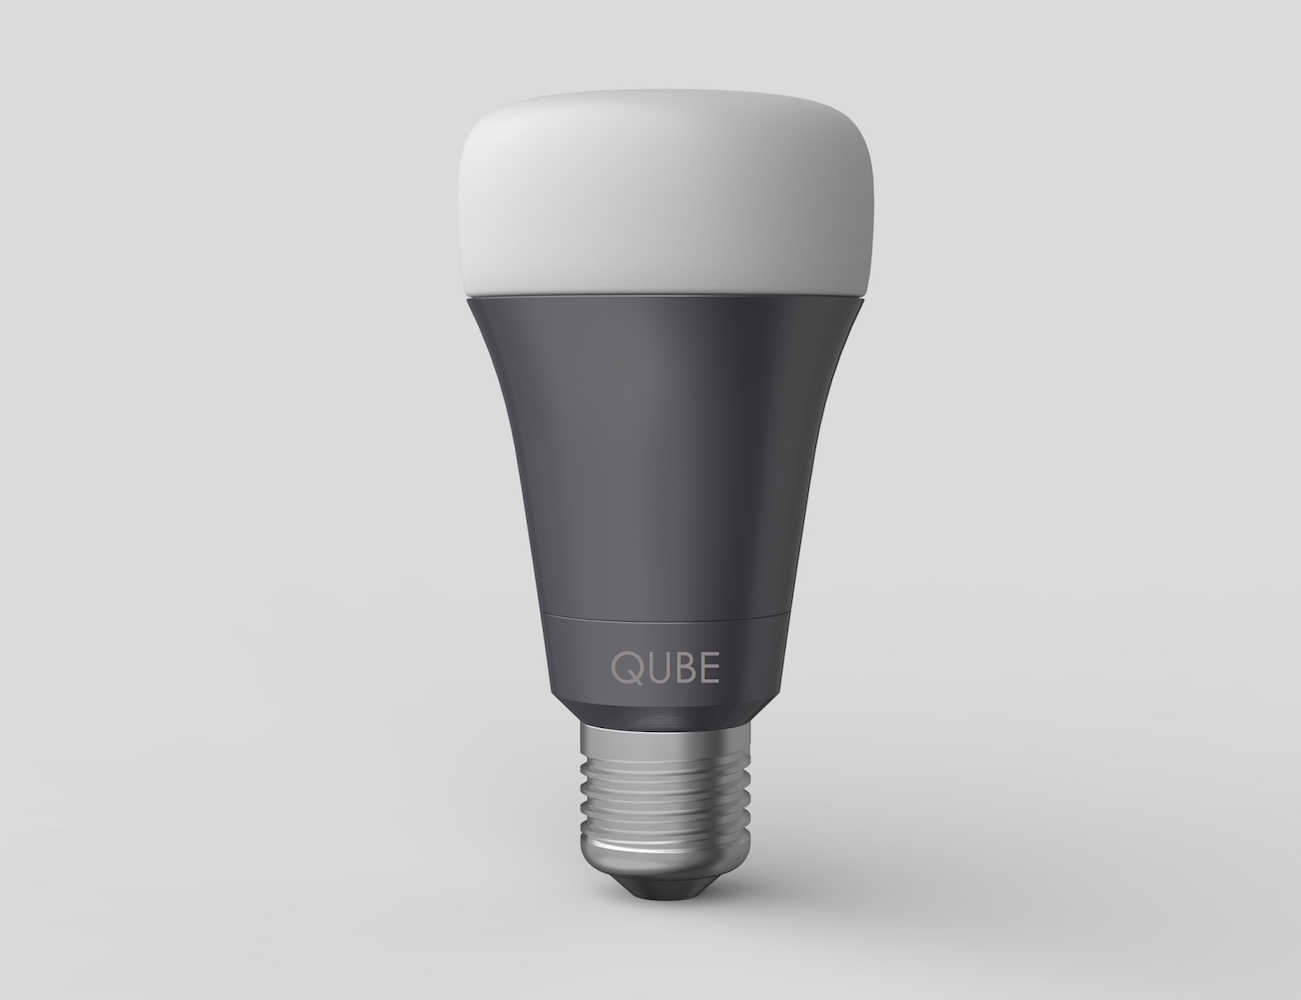 Qube+%E2%80%93+World%26%238217%3Bs+Most+Affordable+Wi-Fi+Enabled%2C+Multi-Color+LED+Smart+Bulb+For+Your+Home